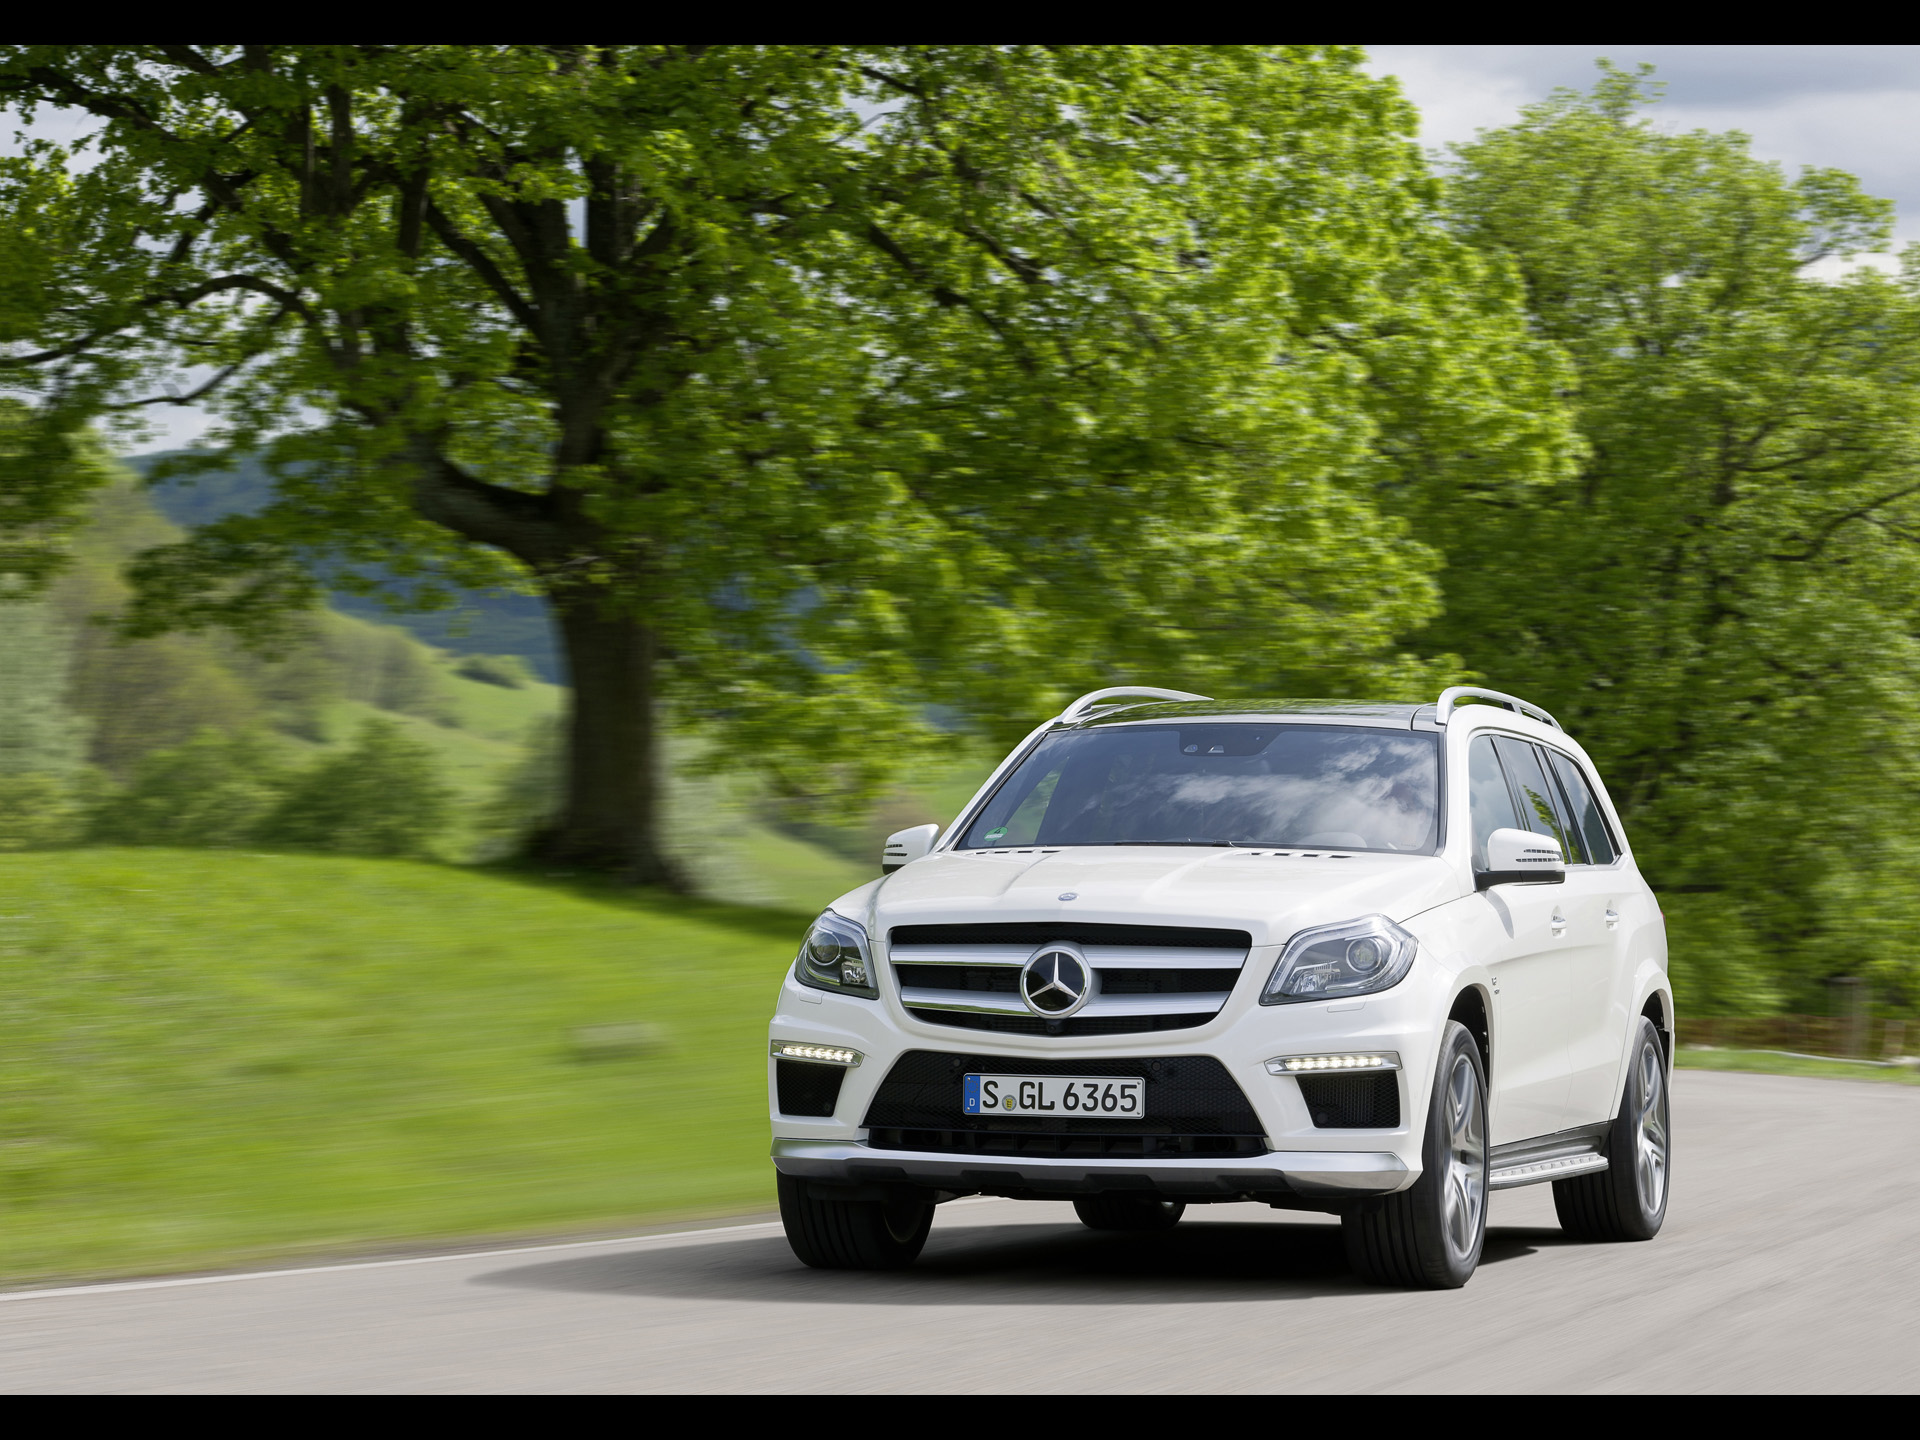 2013 mercedes benz gl 63 amg motion wallpapers and stock photos